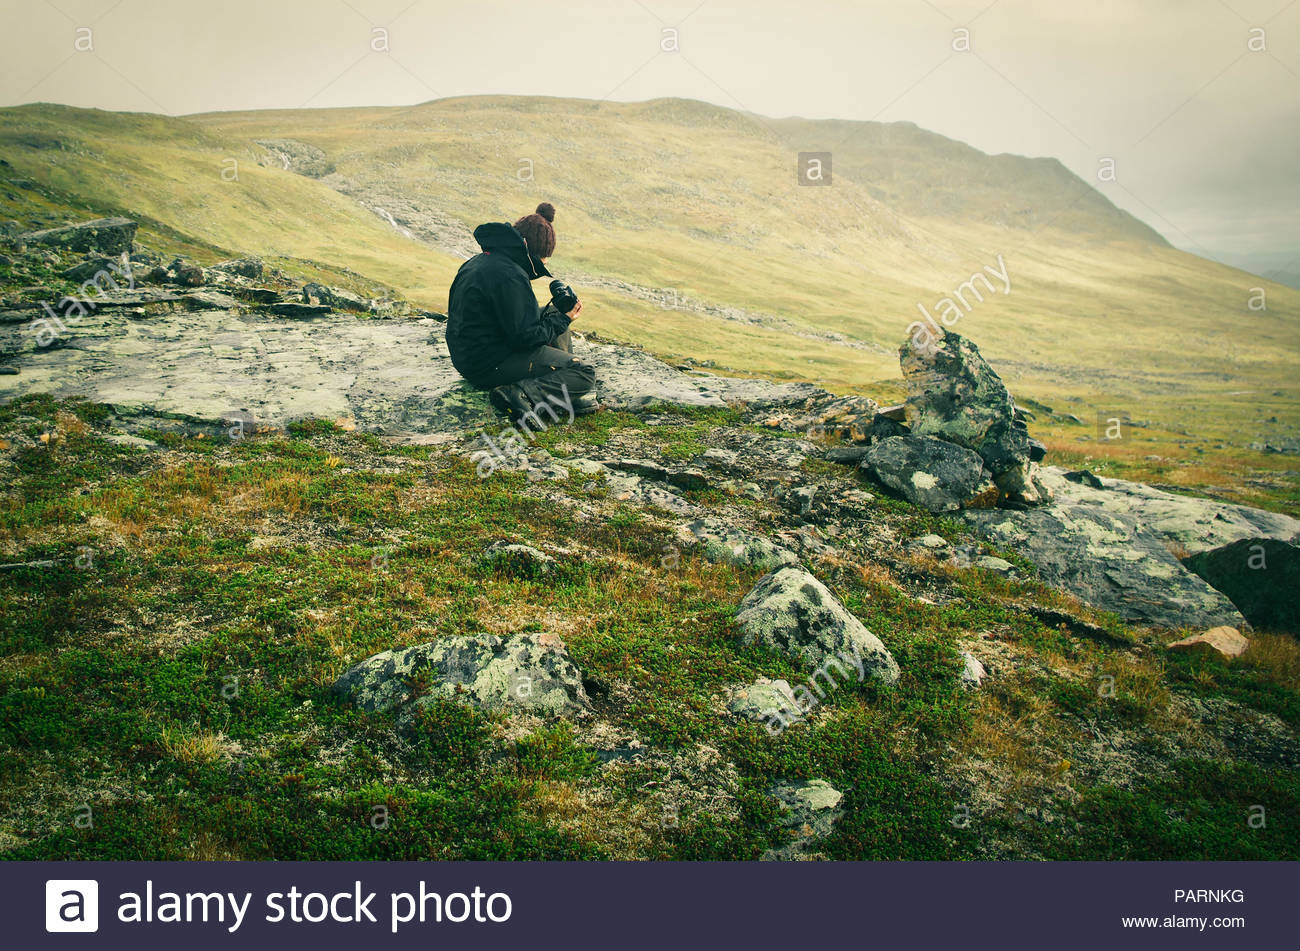 A man sitting on a rock in the mountains - Stock Image